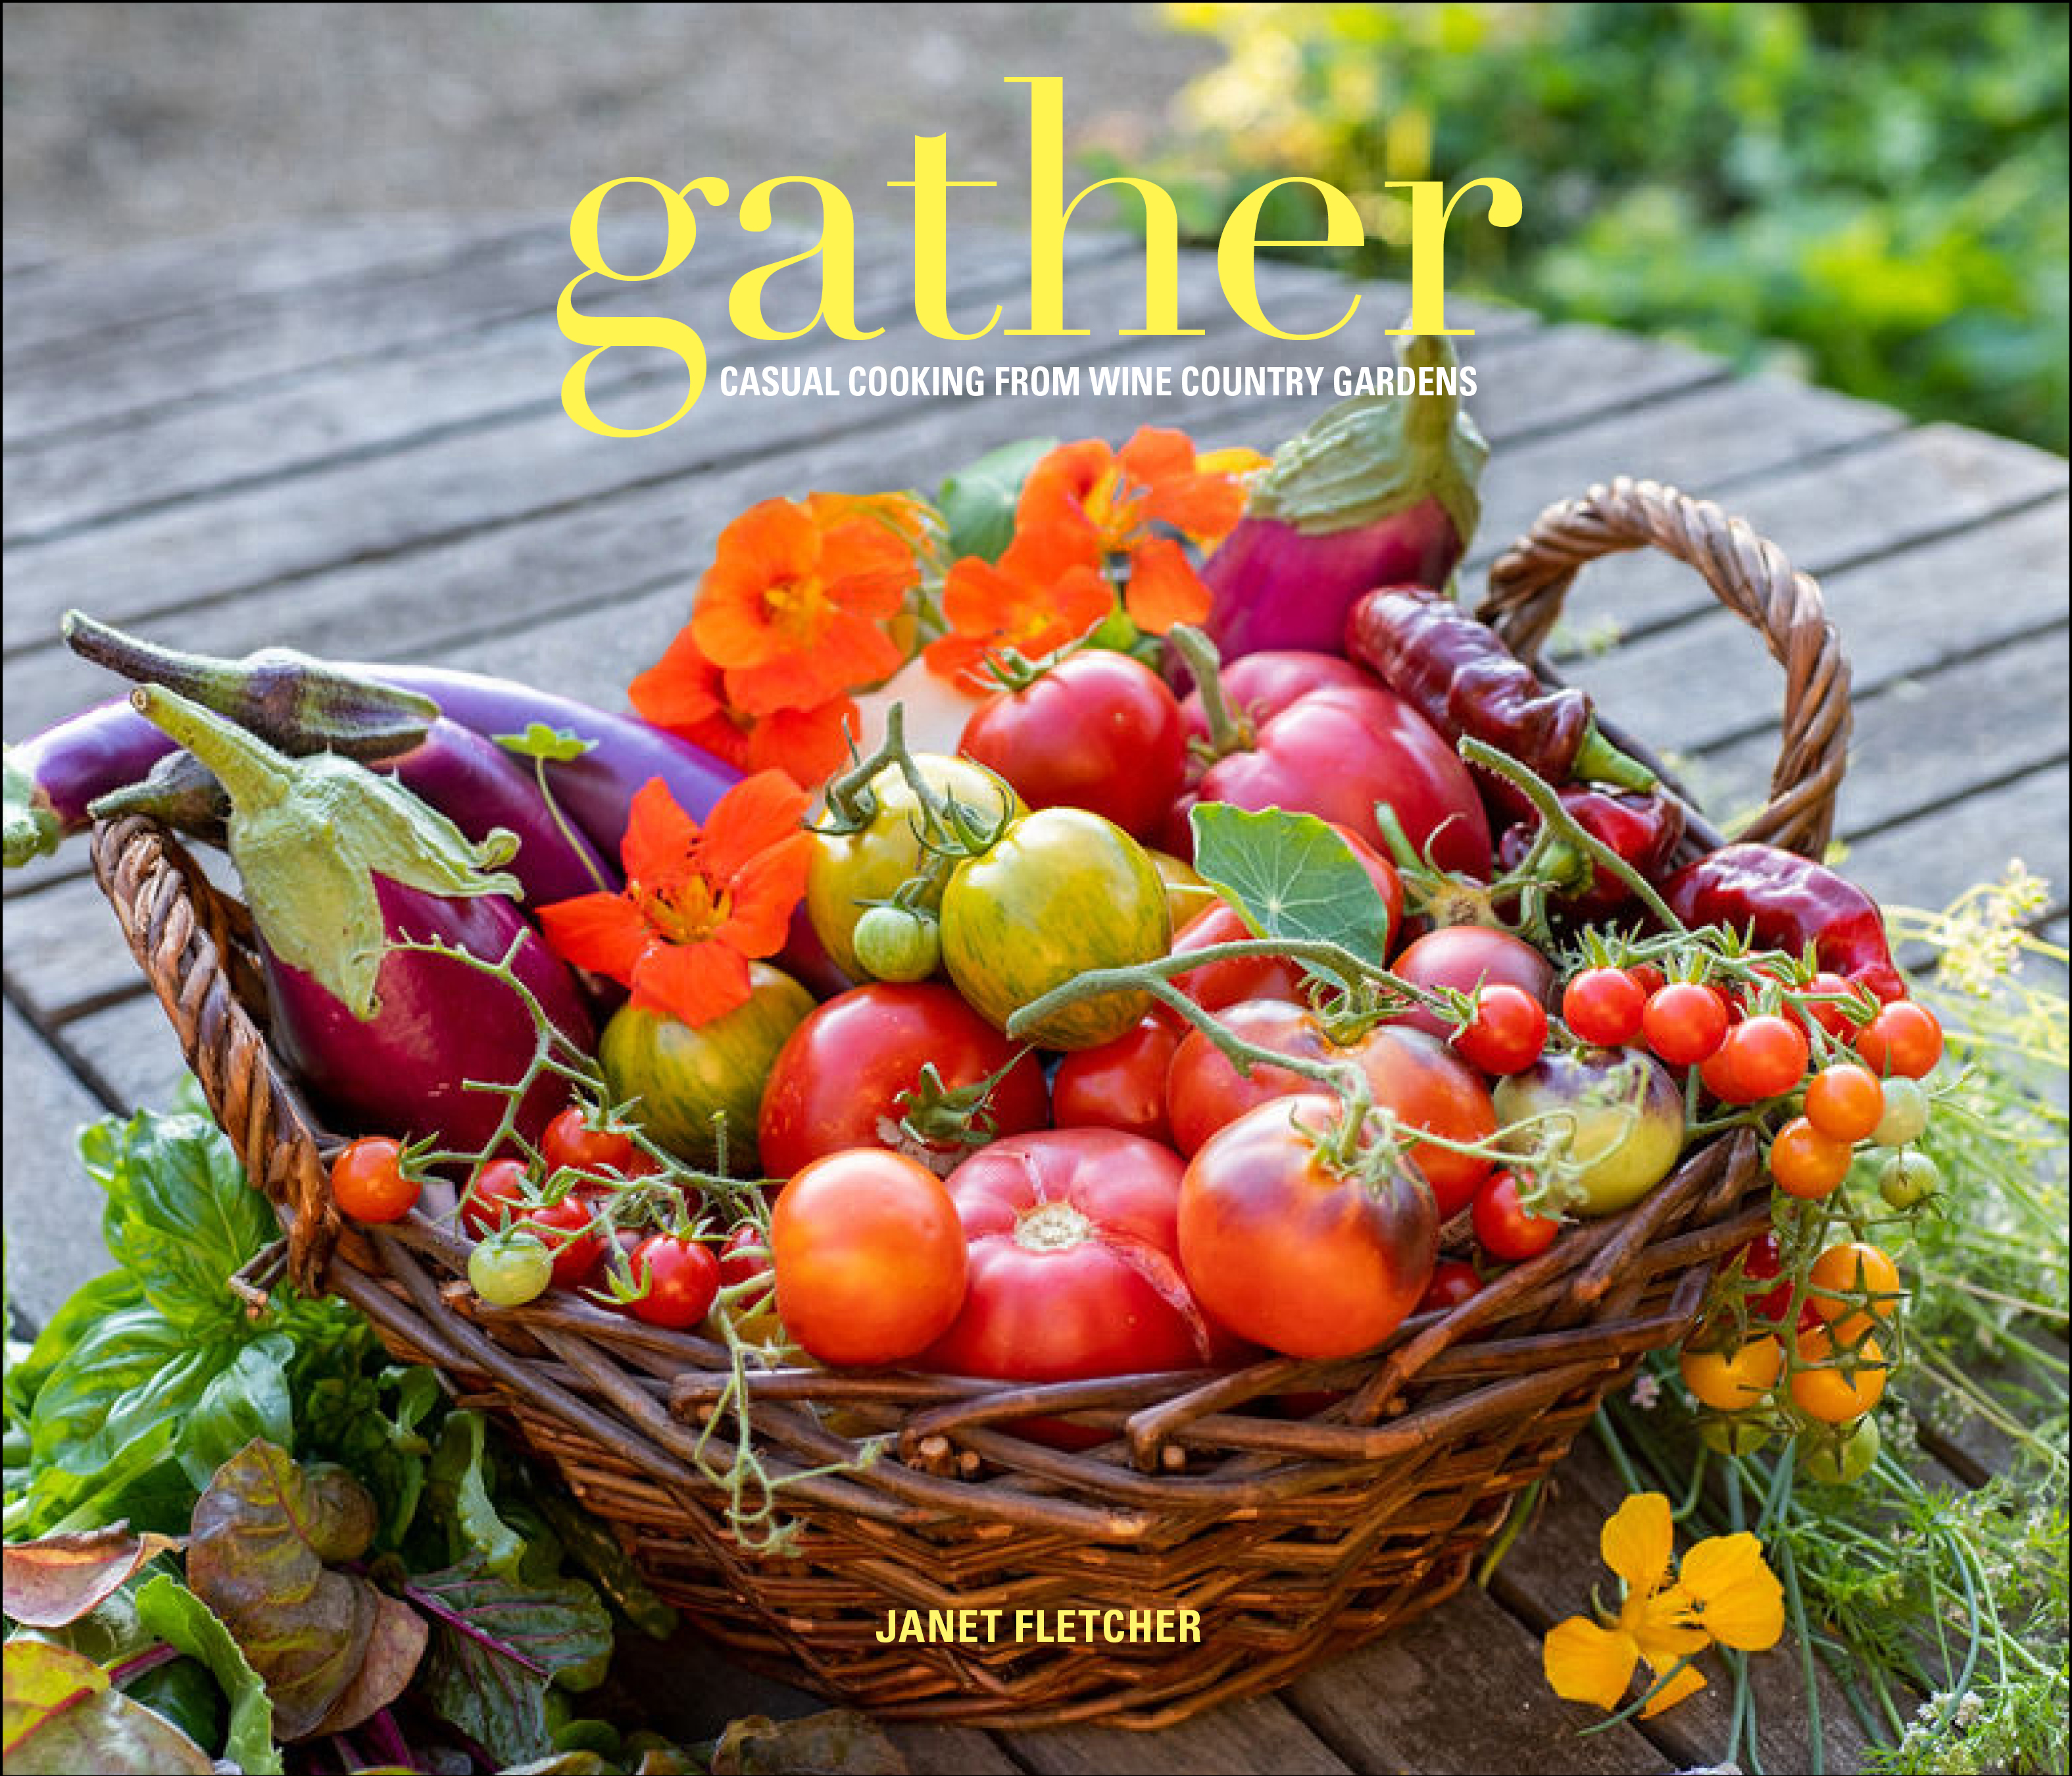 Gather: Casual Cooking from Wine Country Gardens by Janet Fletcher